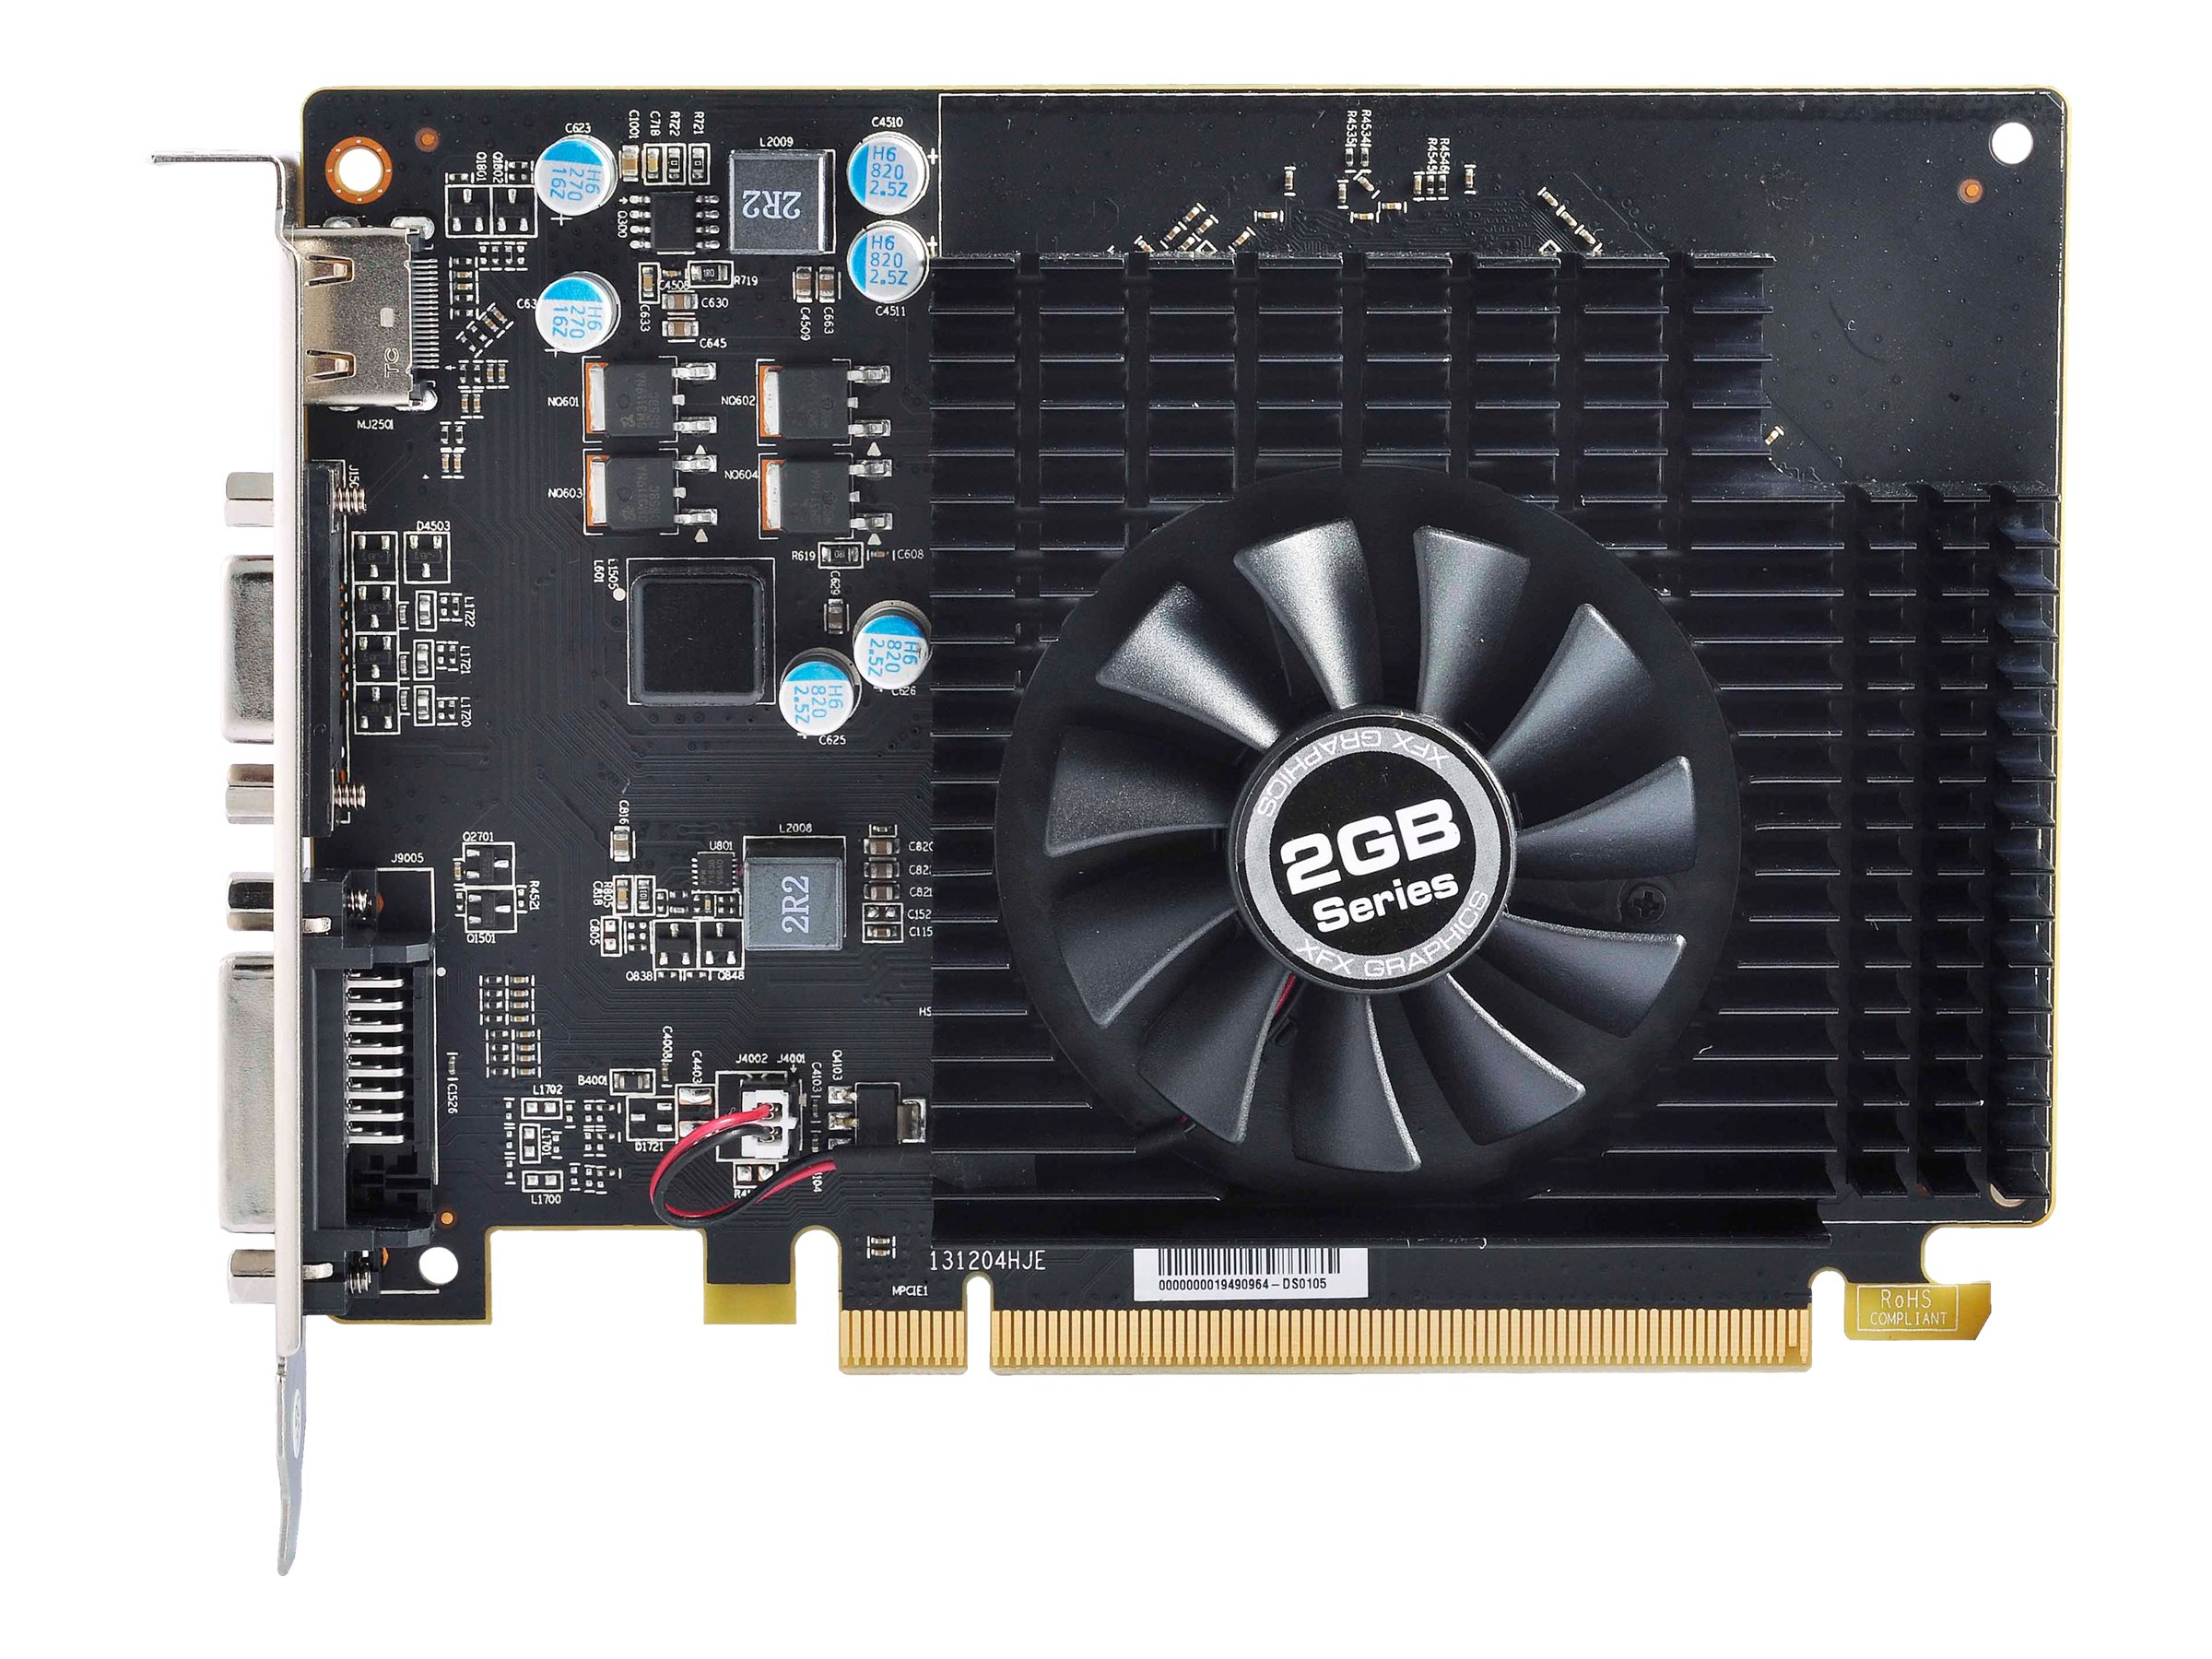 Pine Radeon R7240 PCIe 3.0 Graphics Card, 2GB DDR3